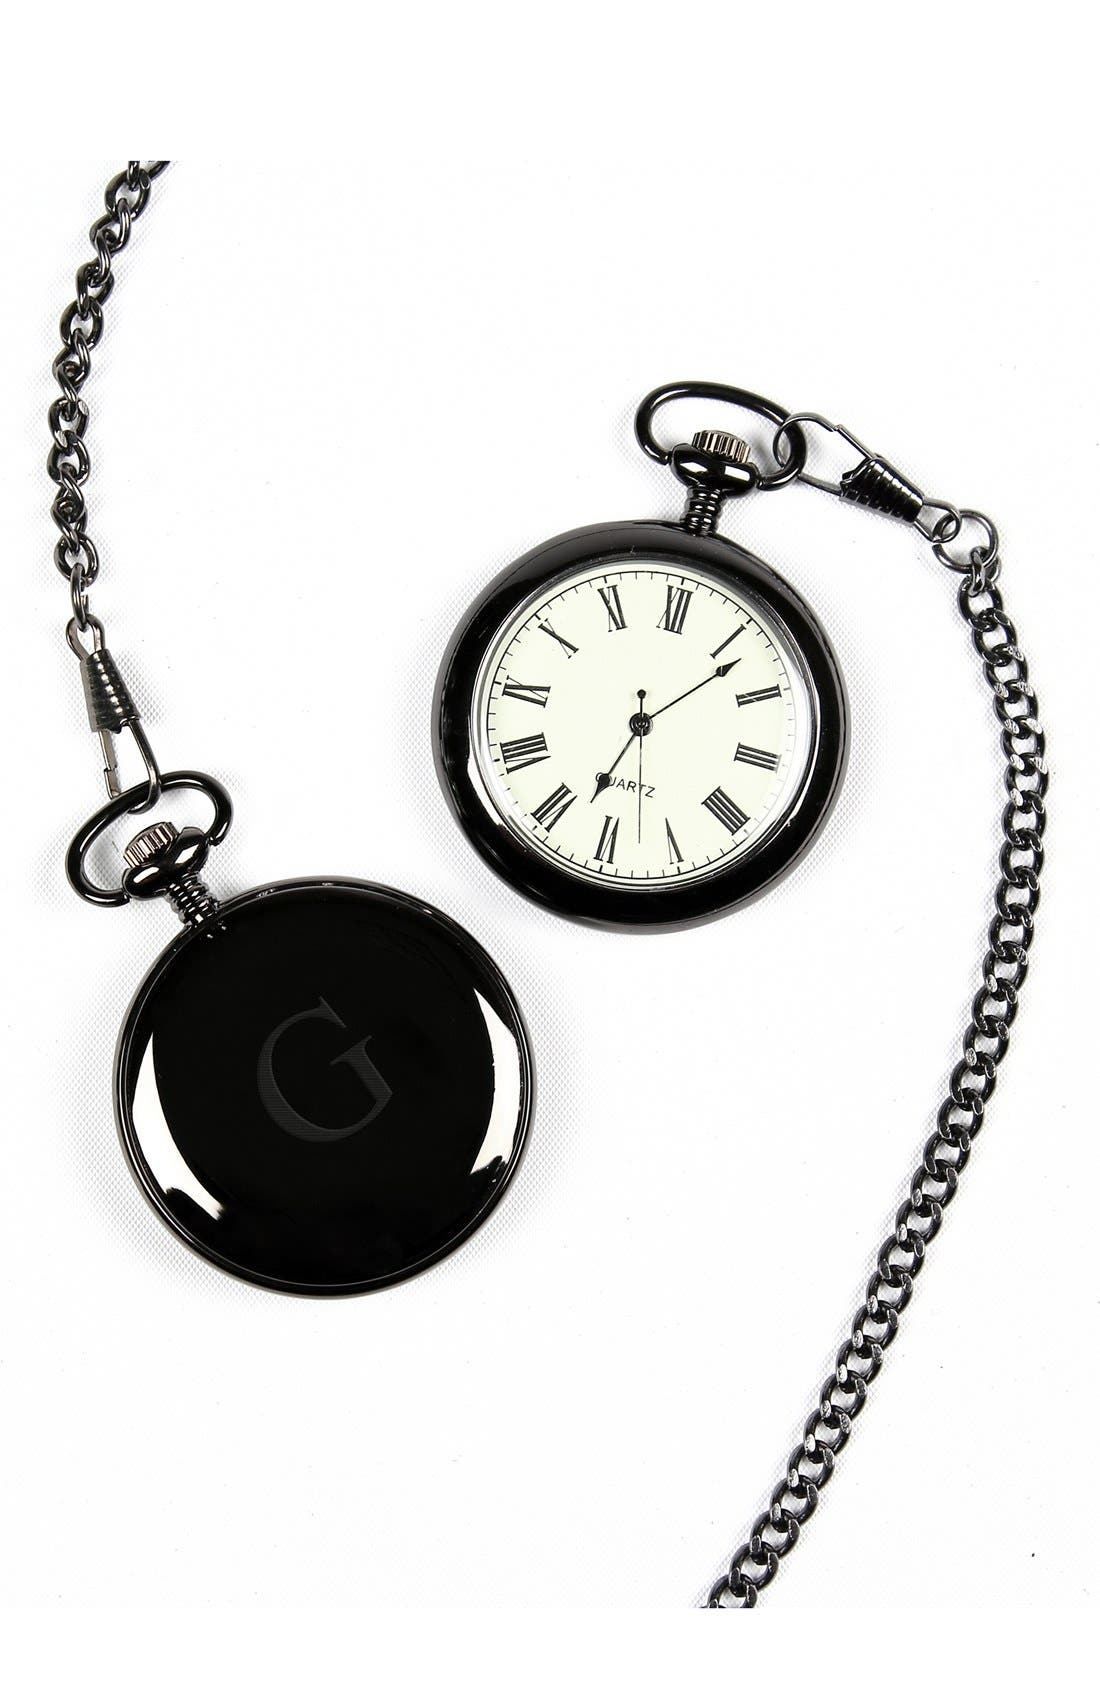 CATHYS CONCEPTS Monogram Pocket Watch, 44mm